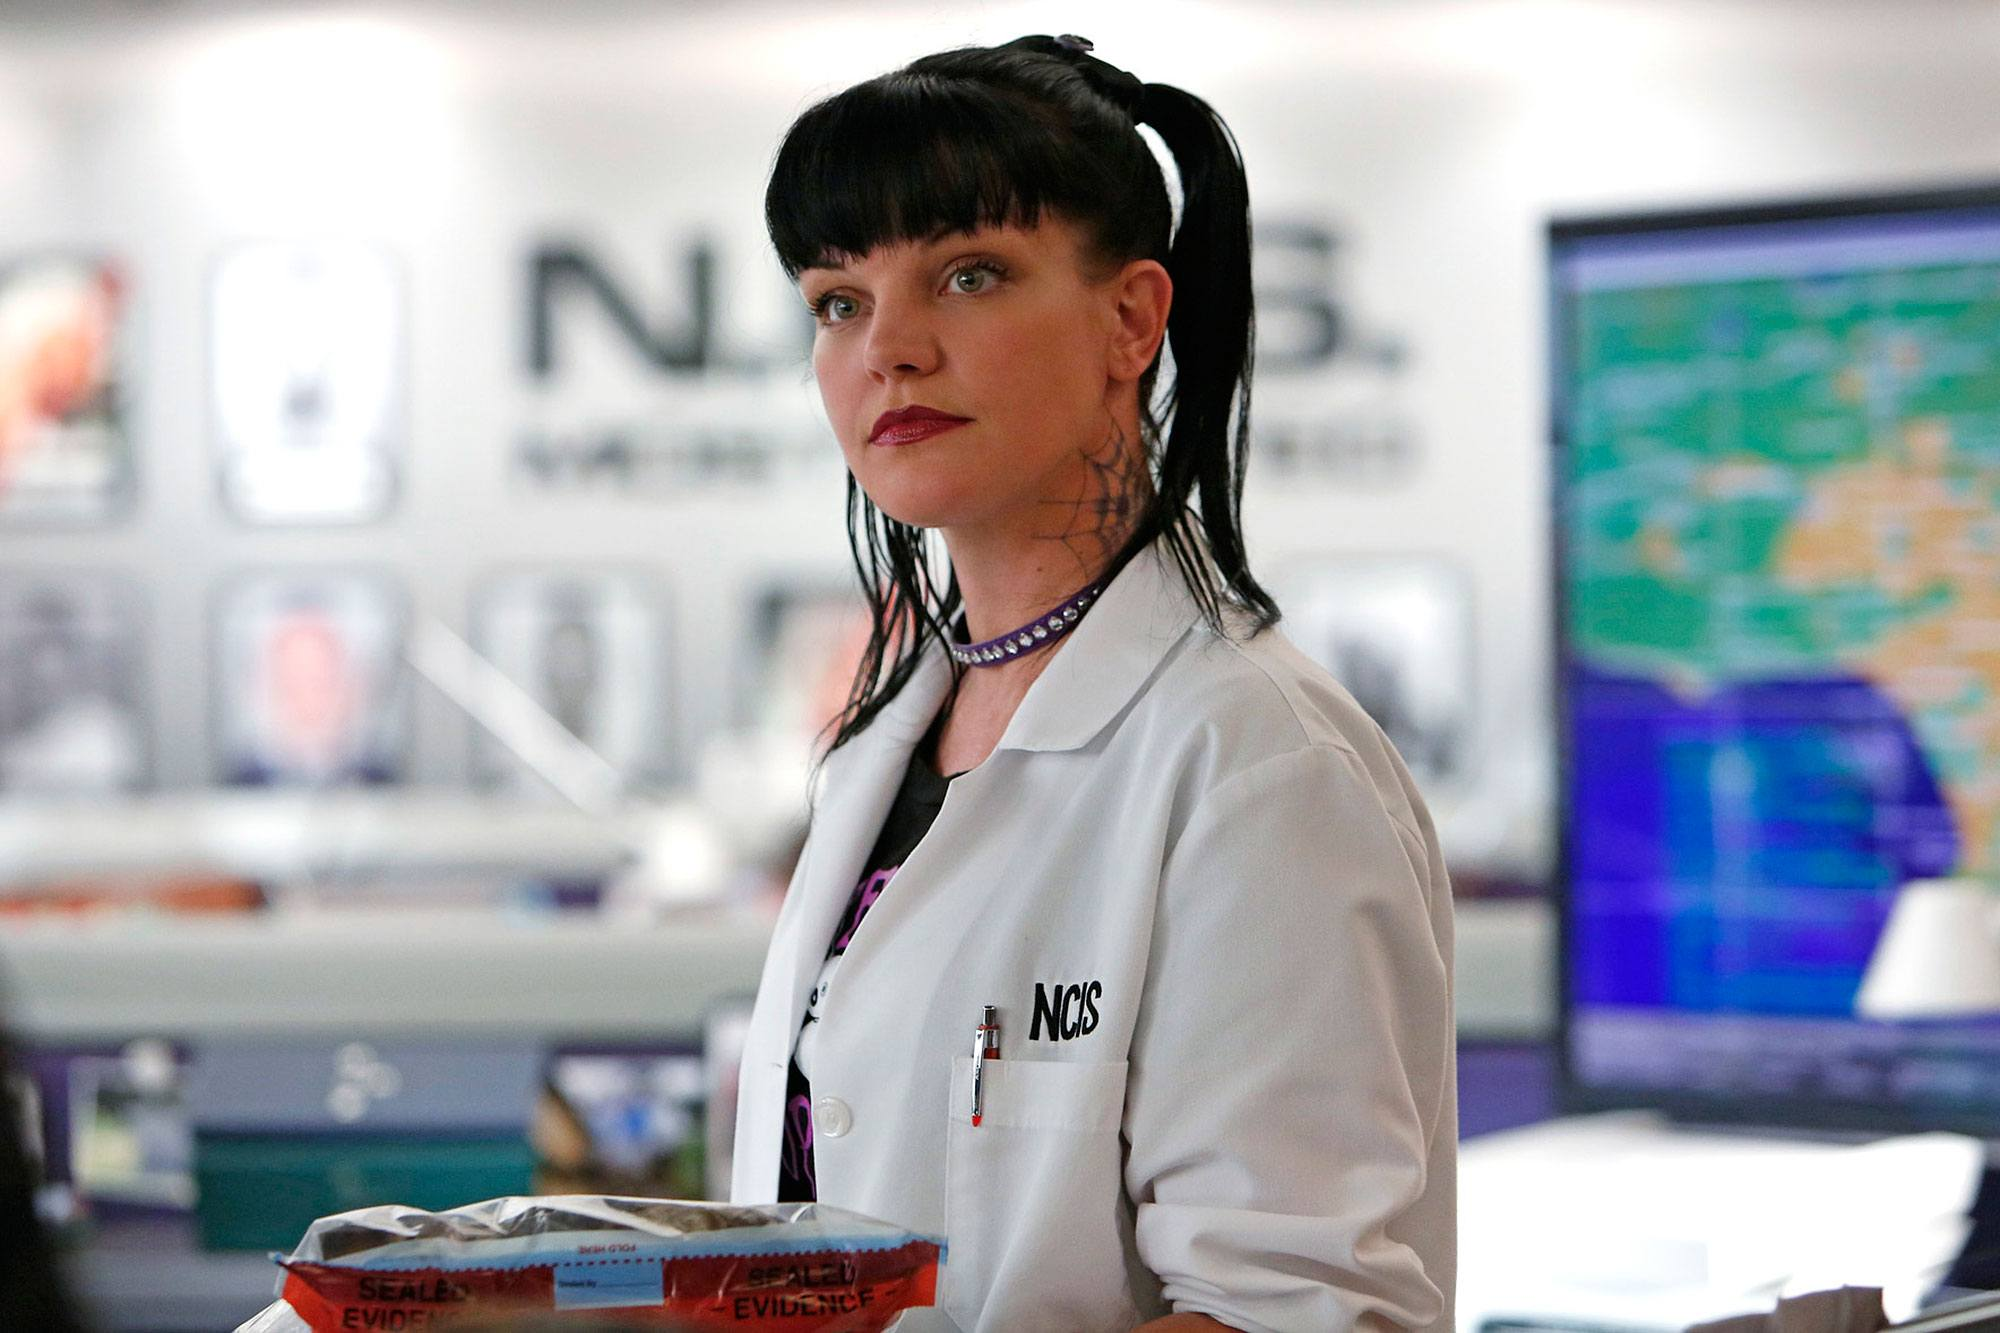 Pauley Perette on NCIS